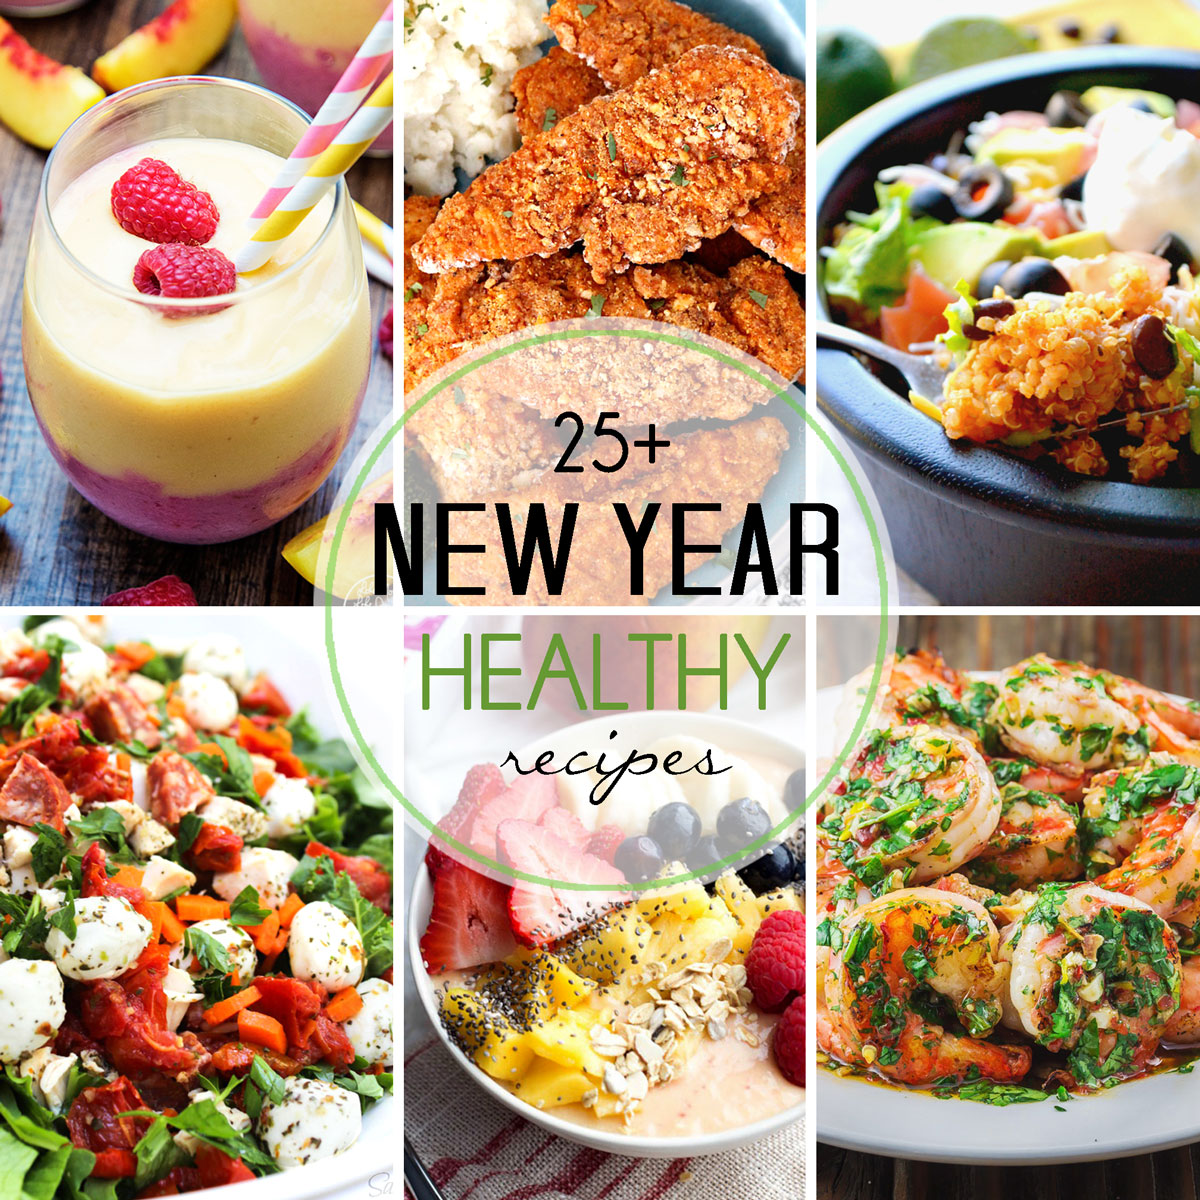 More Than 25 Healthy Recipes for the New Year